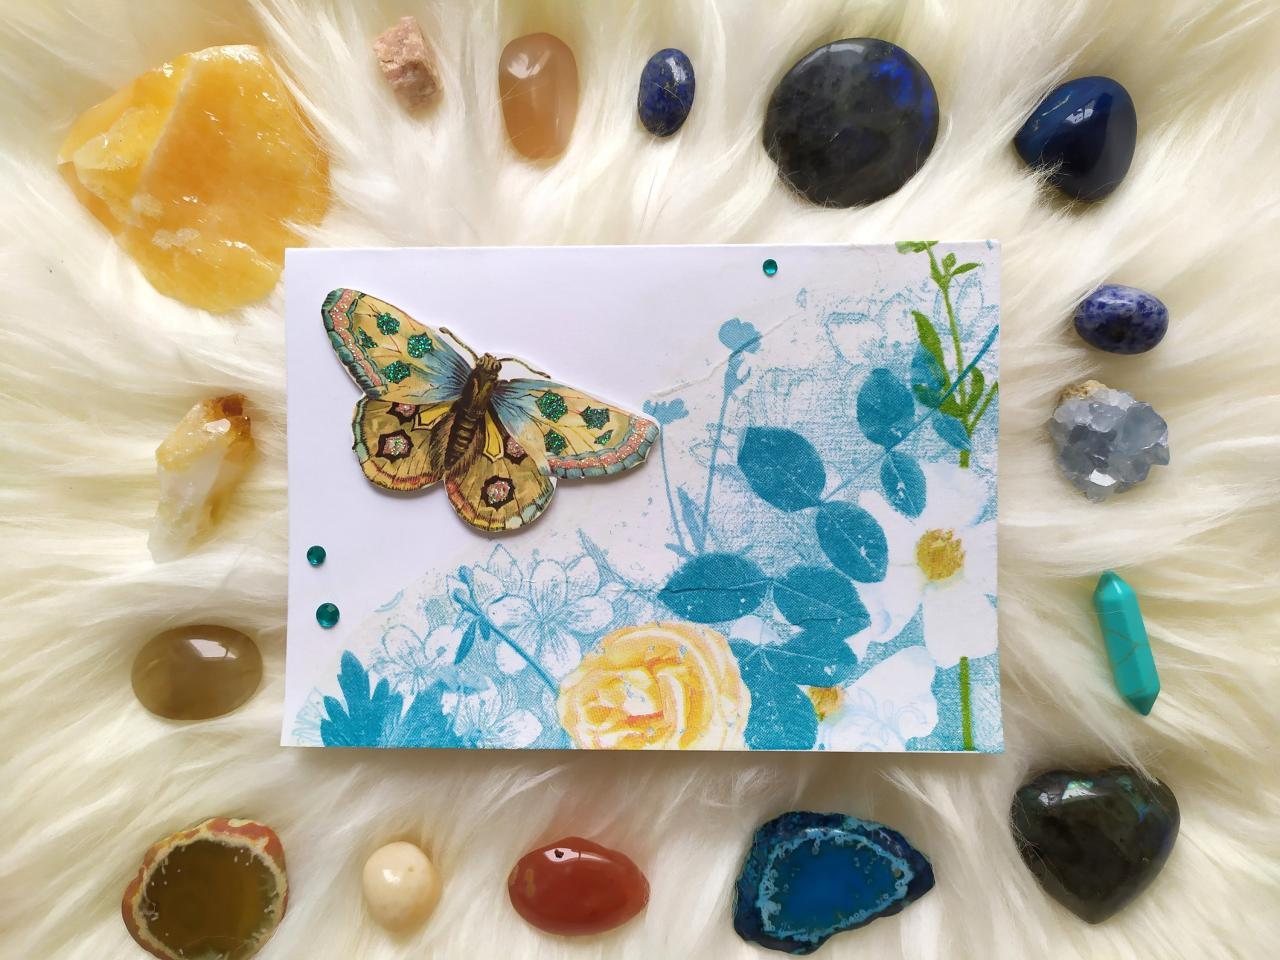 Happy birthday floral greeting card, Fresh spring inspired card, Yellow blue teal summer greeting card, Scrapbooking rose butterfly card